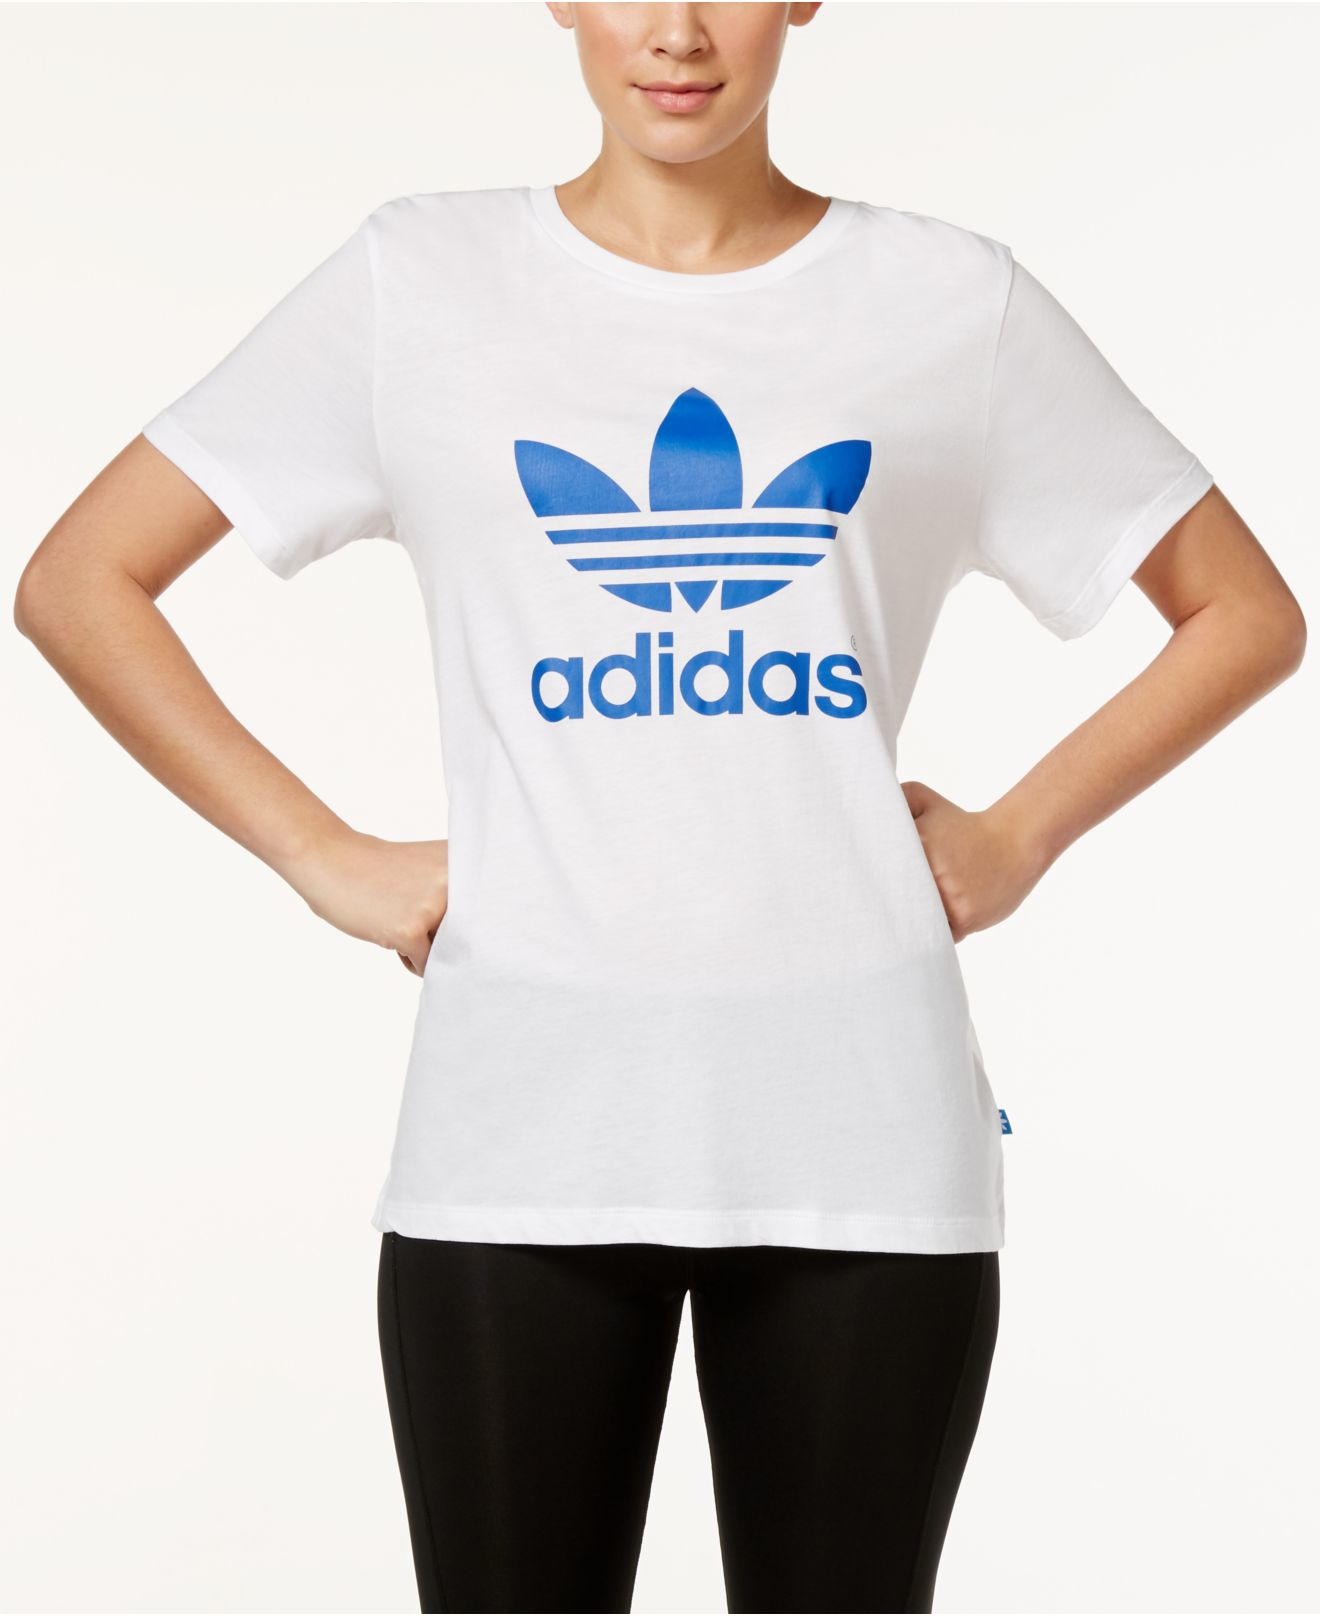 90566730620 adidas Originals Boyfriend Trefoil T-shirt in White - Lyst